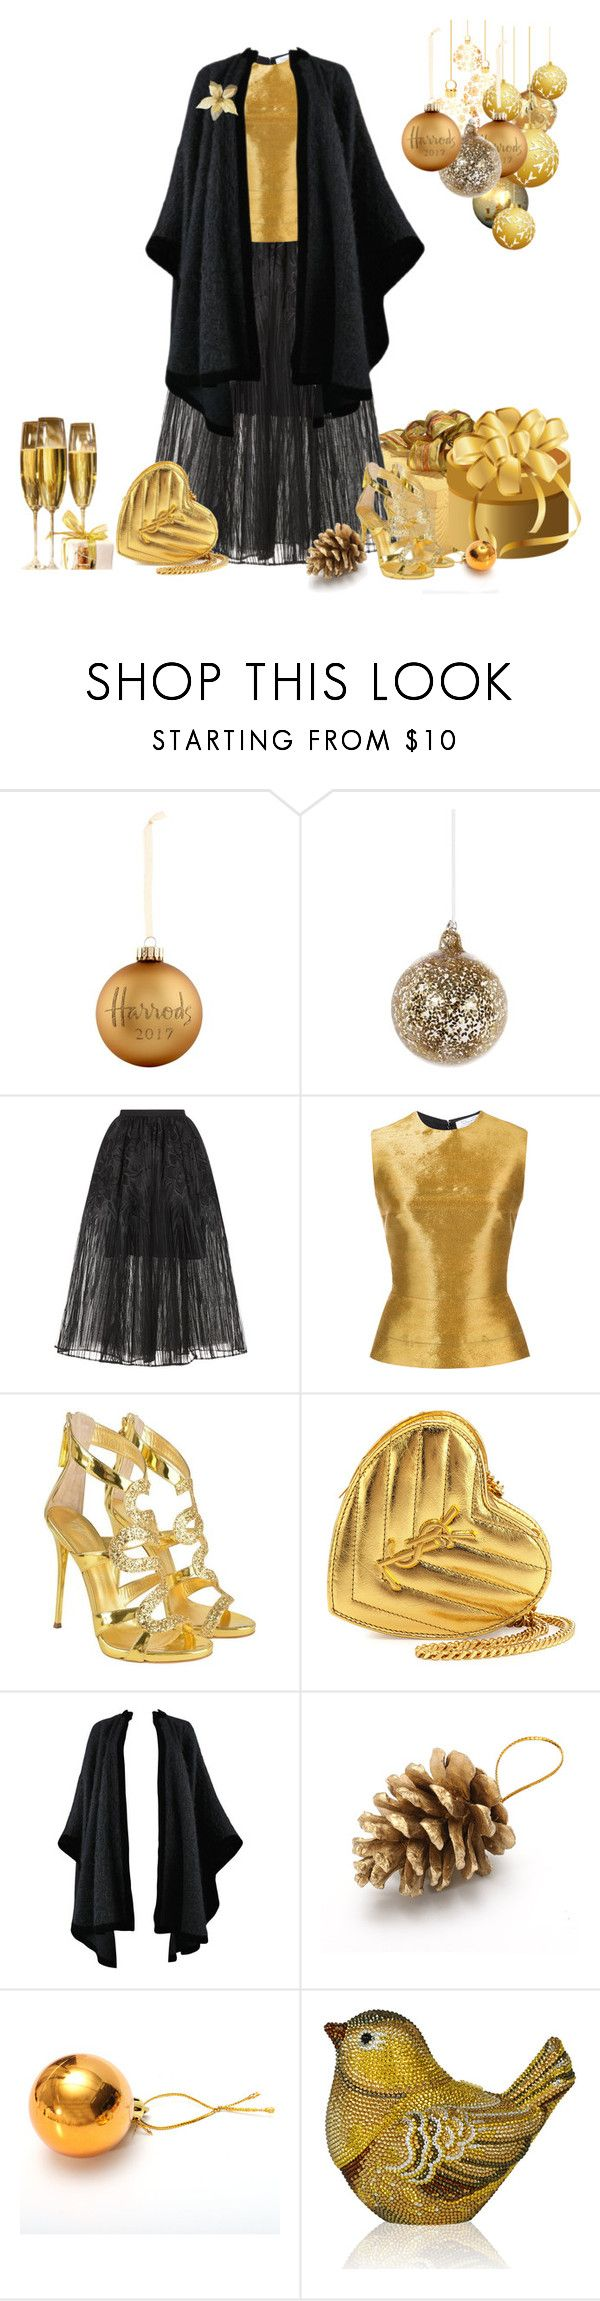 """Christmas lunch outfit."" by cardigurl ❤ liked on Polyvore featuring Harrods, Shishi, Elie Saab, Oscar de la Renta, Giuseppe Zanotti, Yves Saint Laurent and Judith Leiber"